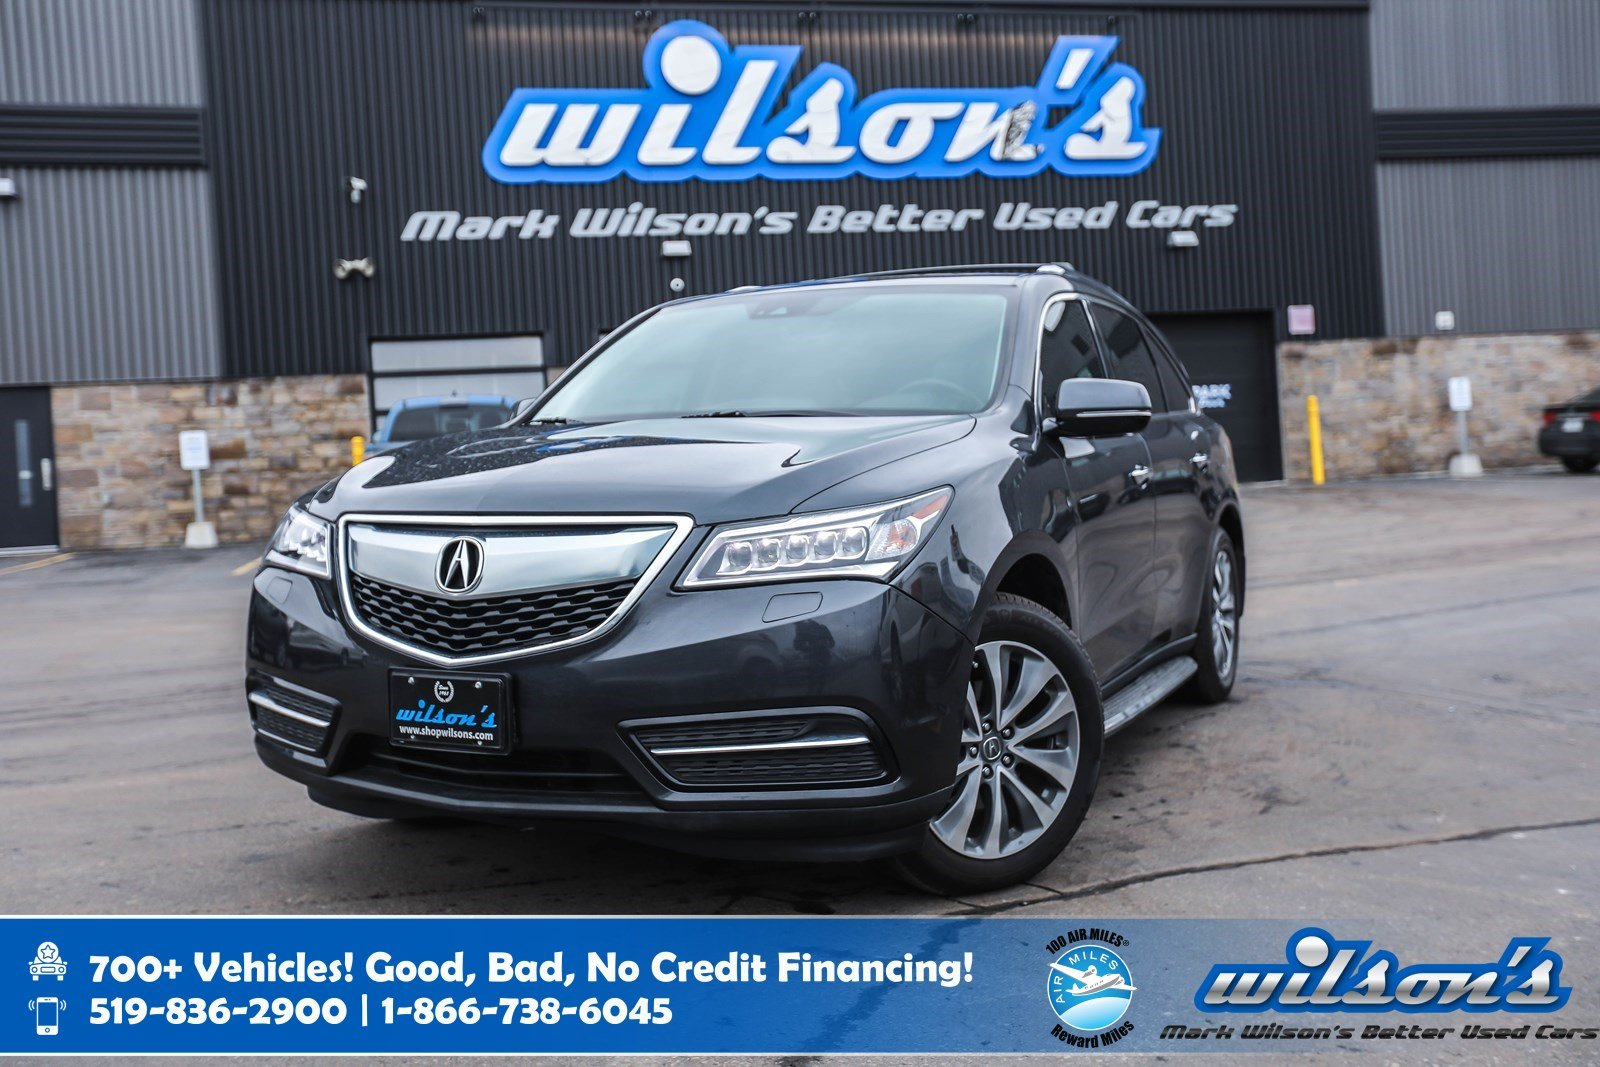 Certified Pre-Owned 2016 Acura MDX AWD, Navigation, Leather, Sunroof, Running Boards, New Tires, Memory Seats, Rear Camera & more